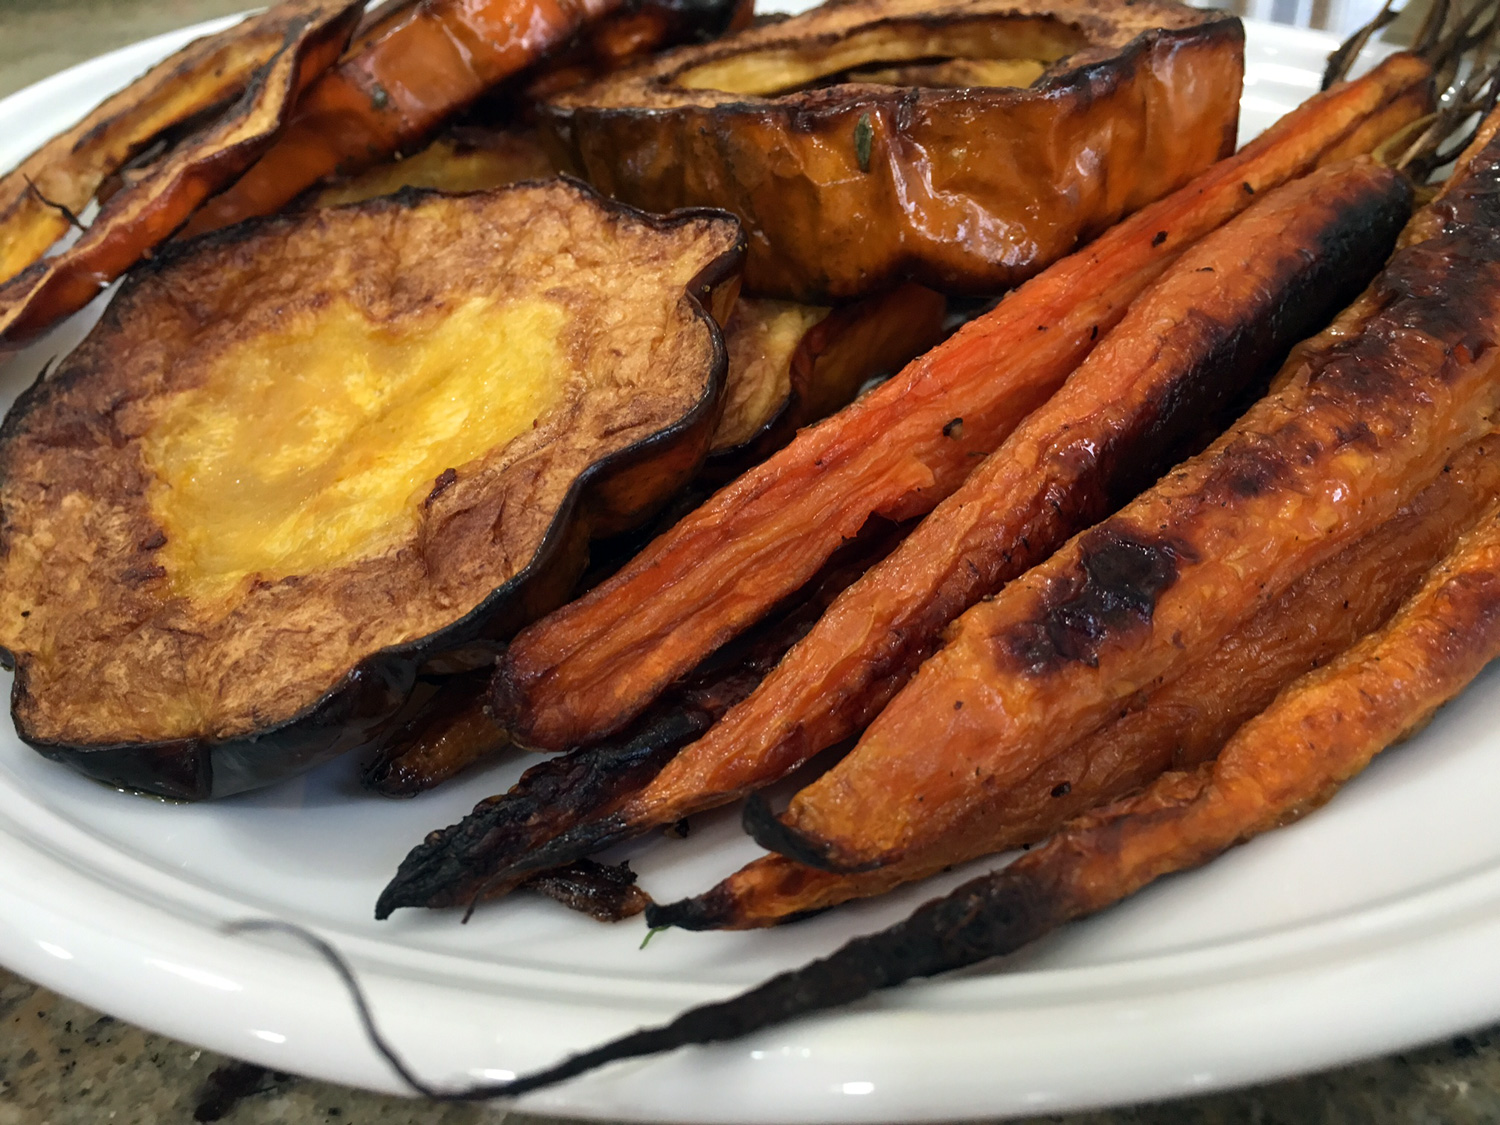 Sweet and earthy - Oven roasted acorn squash and whole carrots